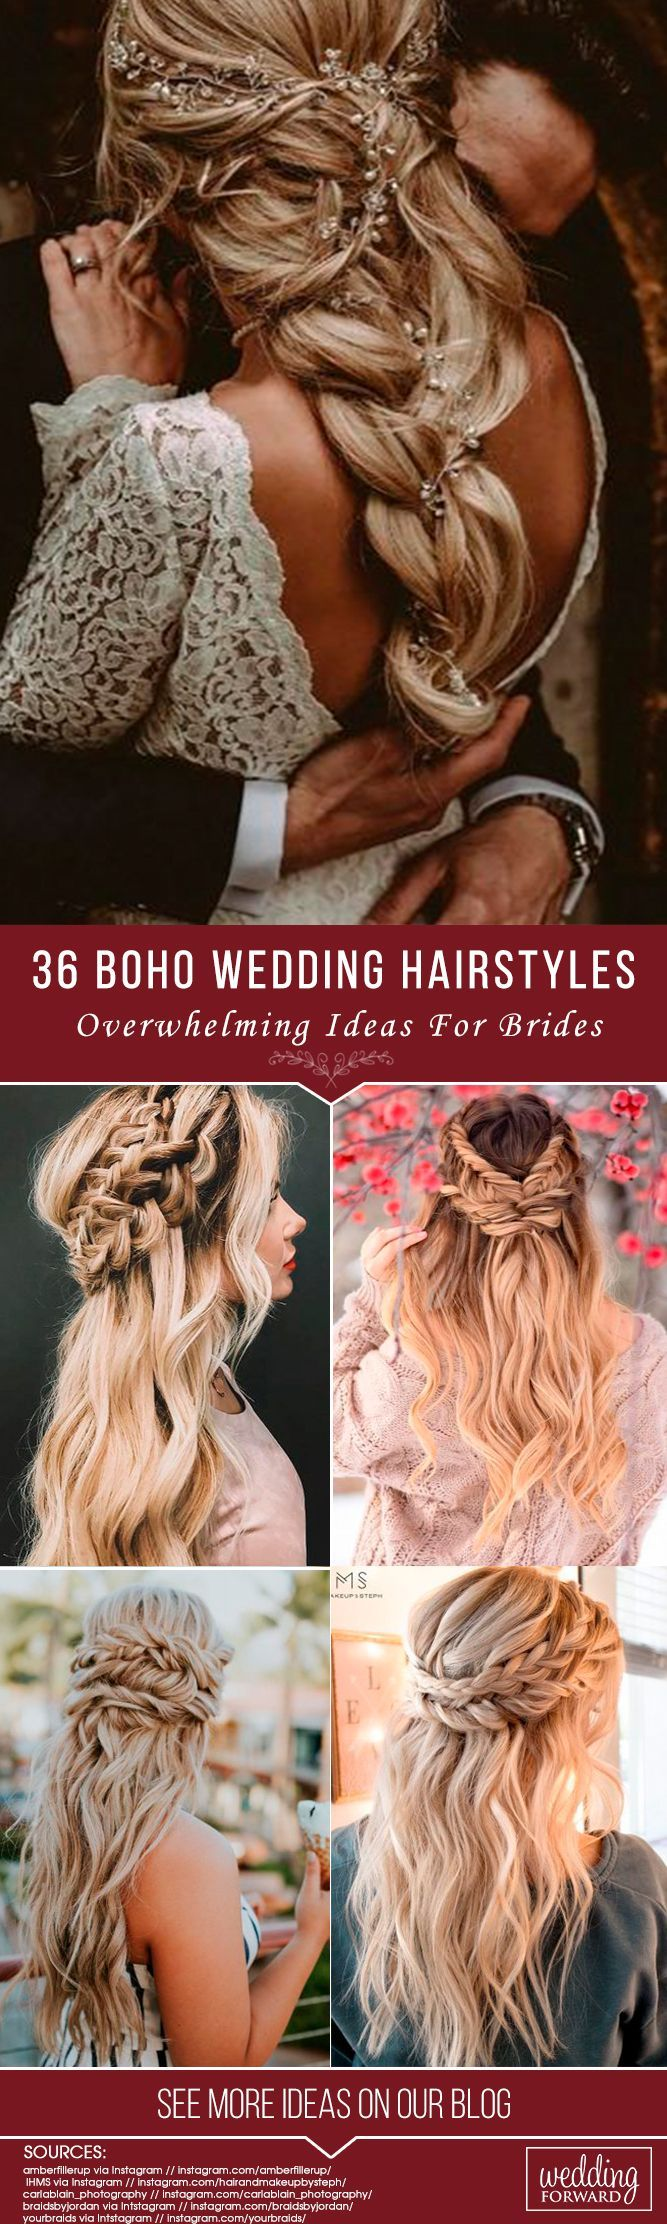 36 Overwhelming Boho Wedding Hairstyles ❤️ Here you will find a plethora of boho wedding hairstyles for any tastes, starting with elegant braided updos and ending with some creative solutions. See more: http://www.weddingforward.com/boho-wedding-hairstyles/